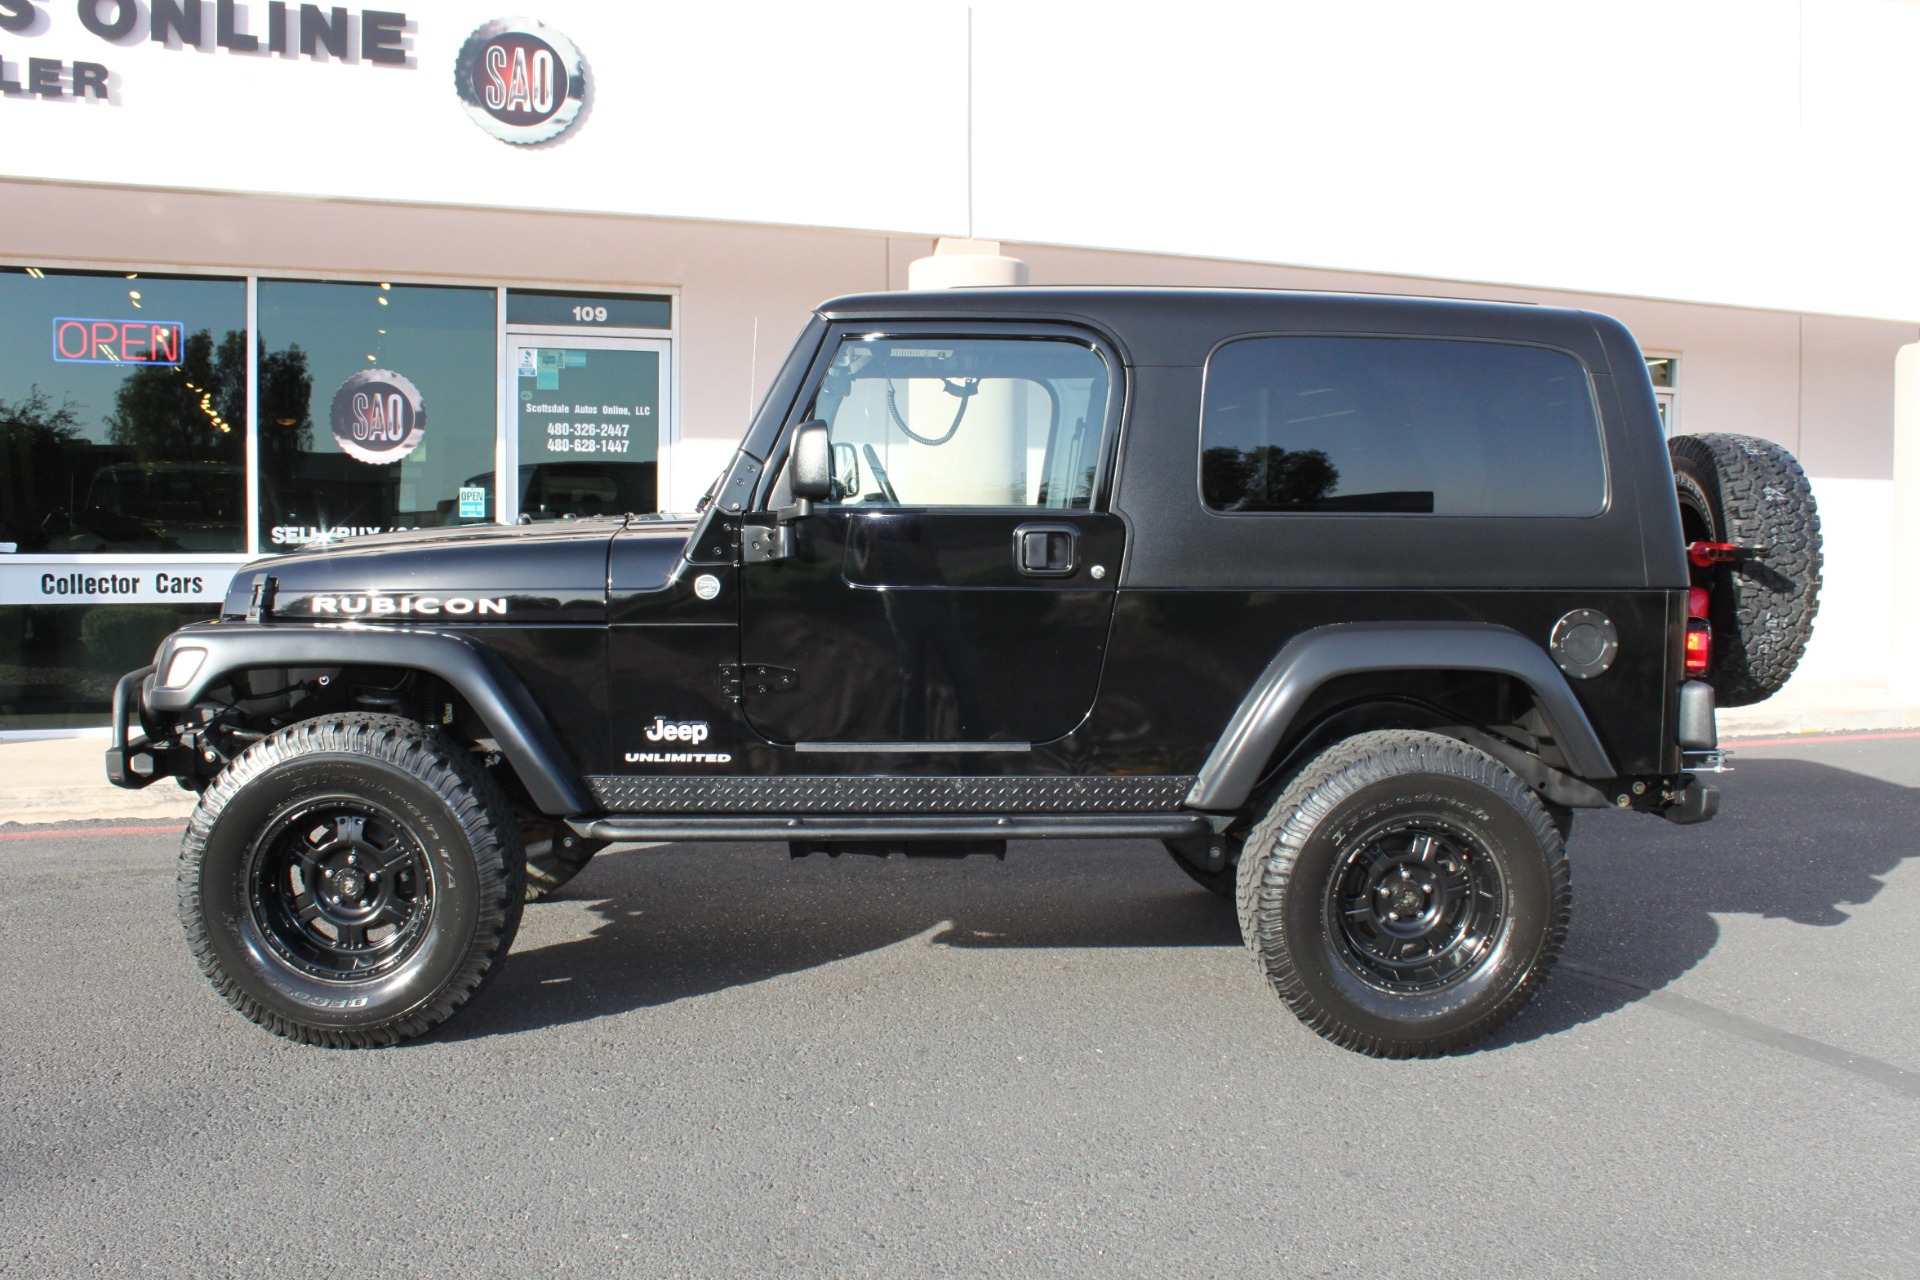 Used-2006-Jeep-Wrangler-Unlimited-Rubicon-LWB-Wagoneer